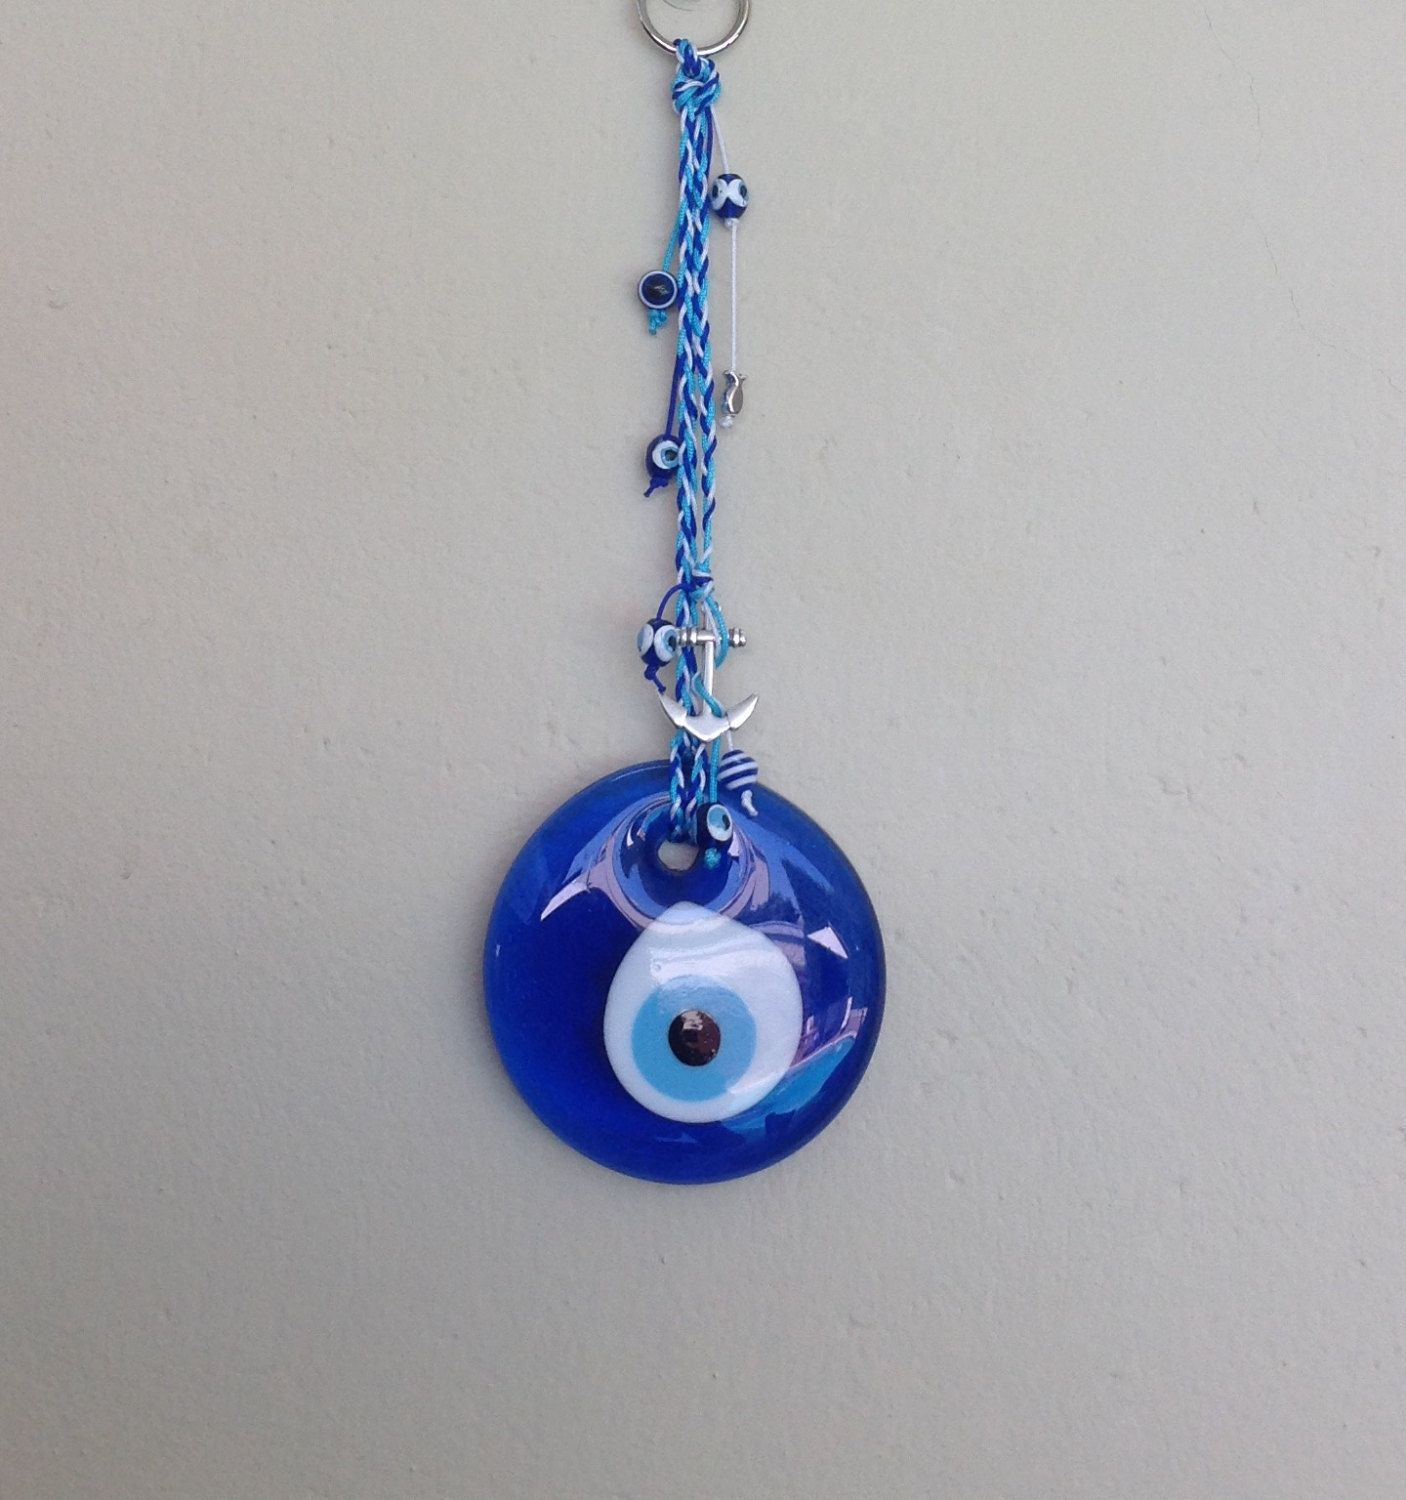 Round evil eye charm good luck charm nazar talisman greek round evil eye charm good luck charm nazar talisman greek amipublicfo Gallery